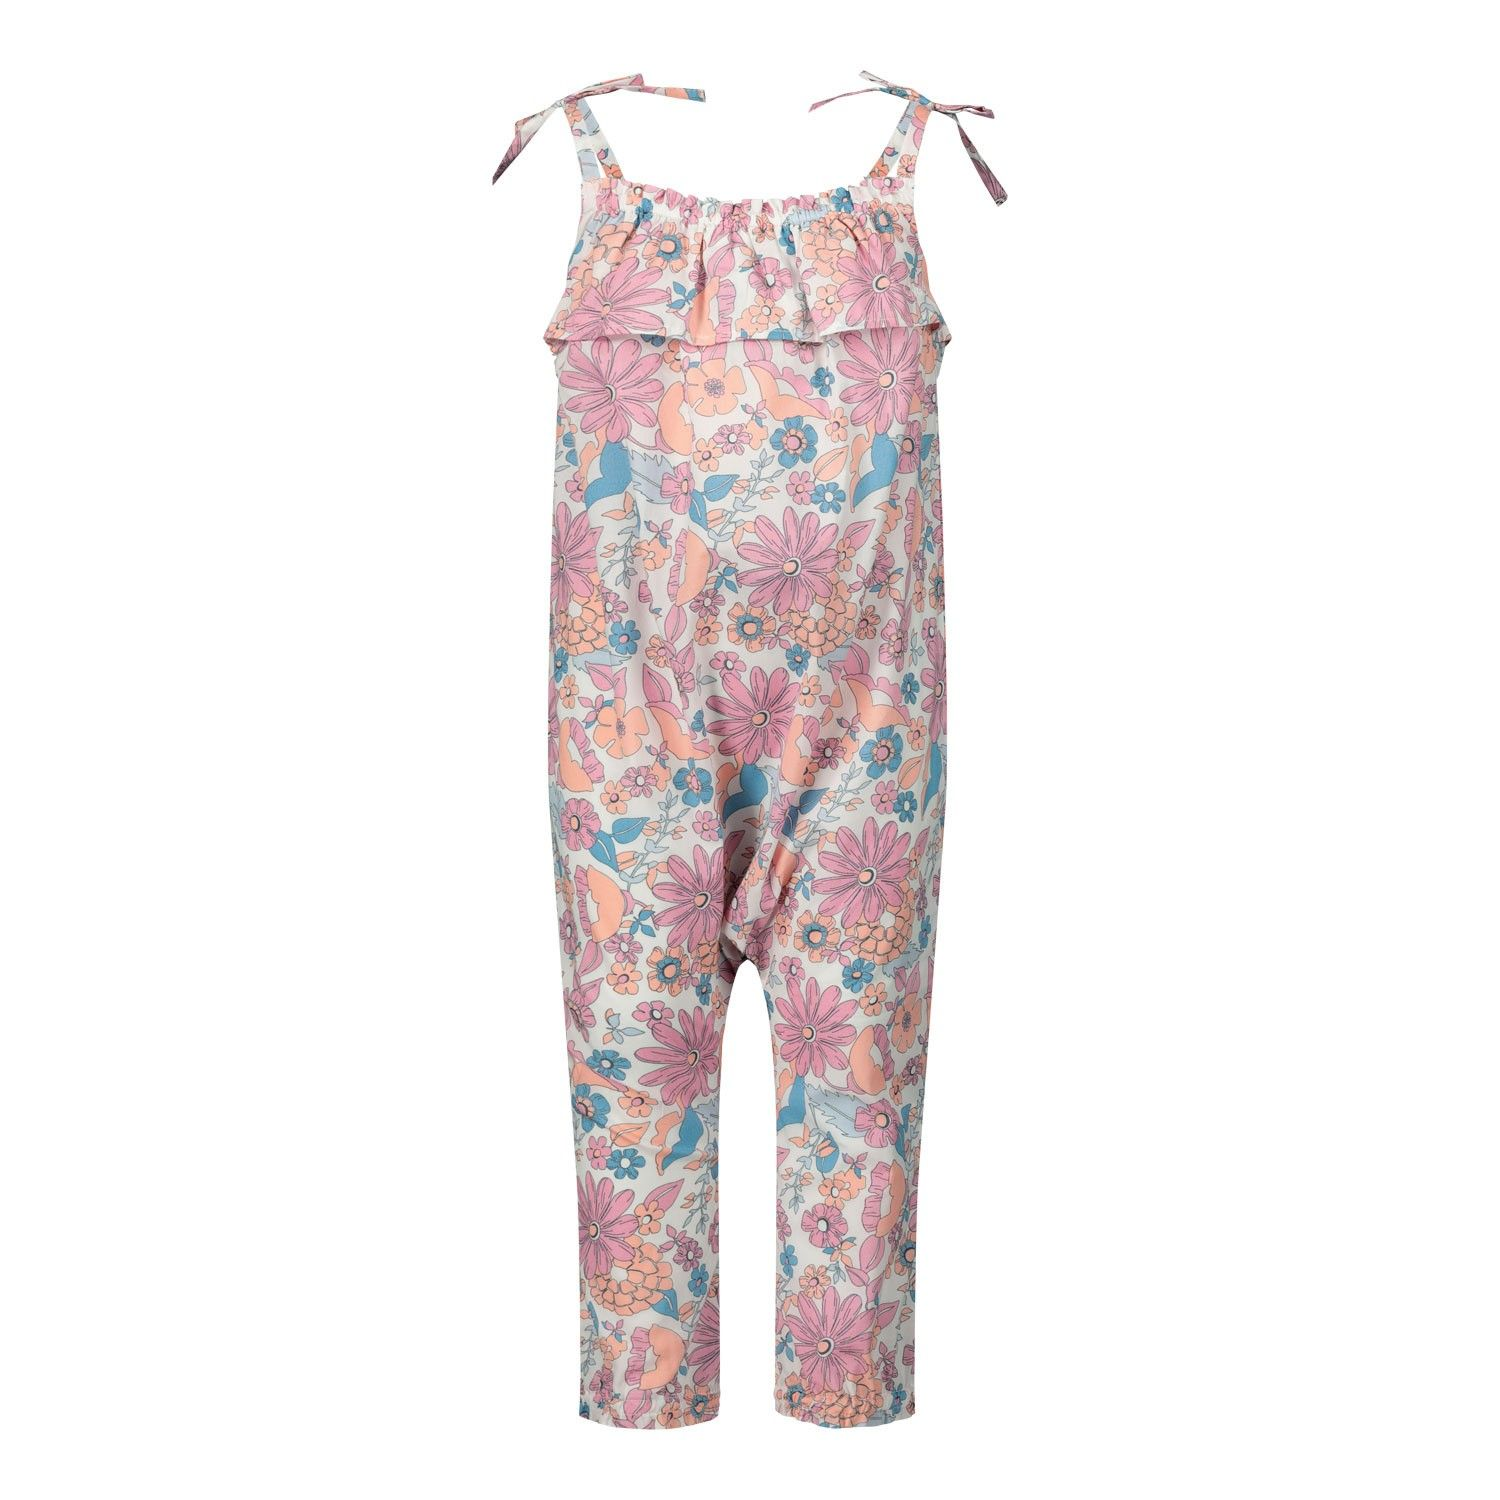 Picture of Chloé C04161 baby jumpsuit pink